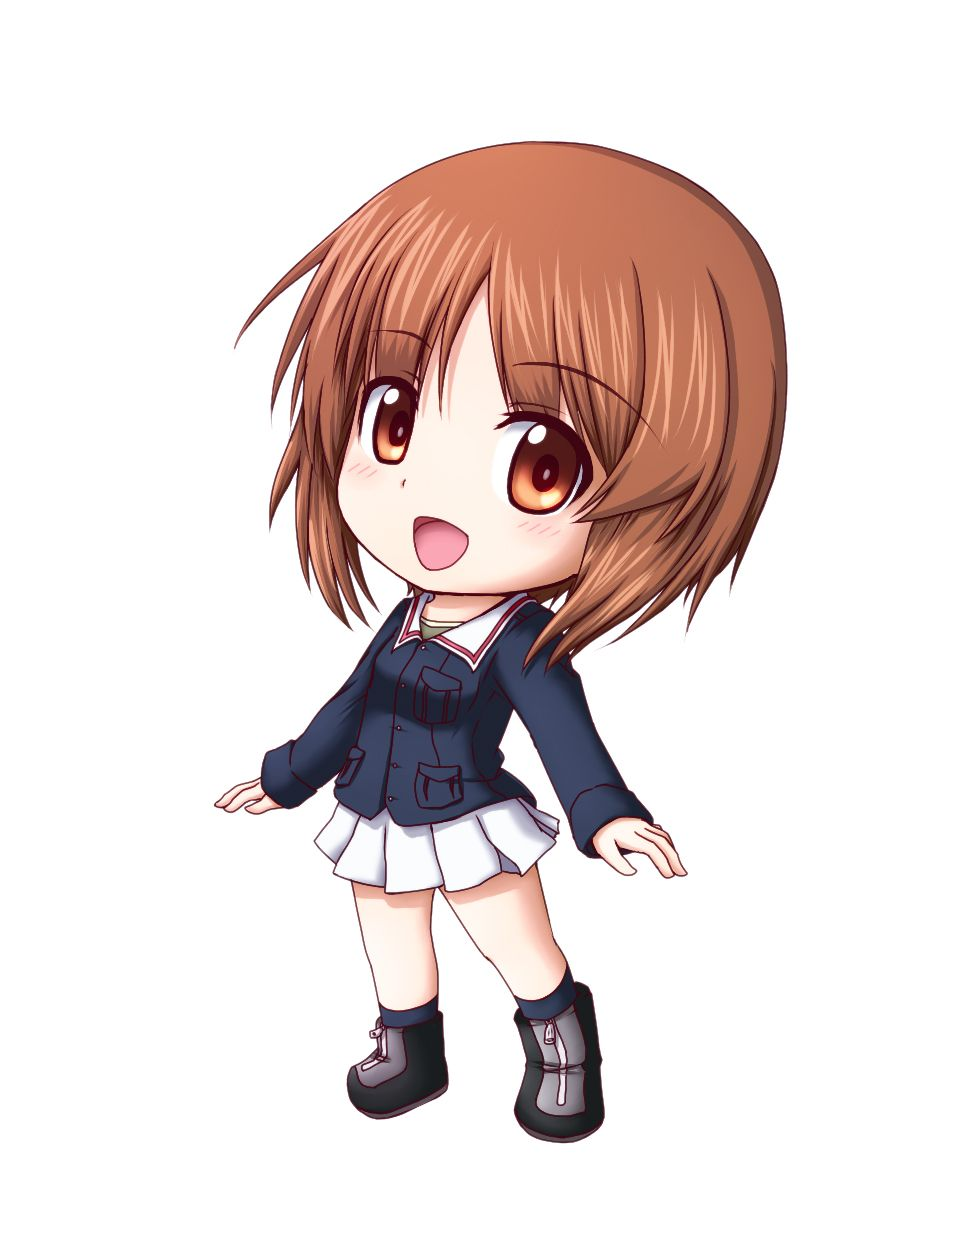 Pix for anime chibi girl with brown hair